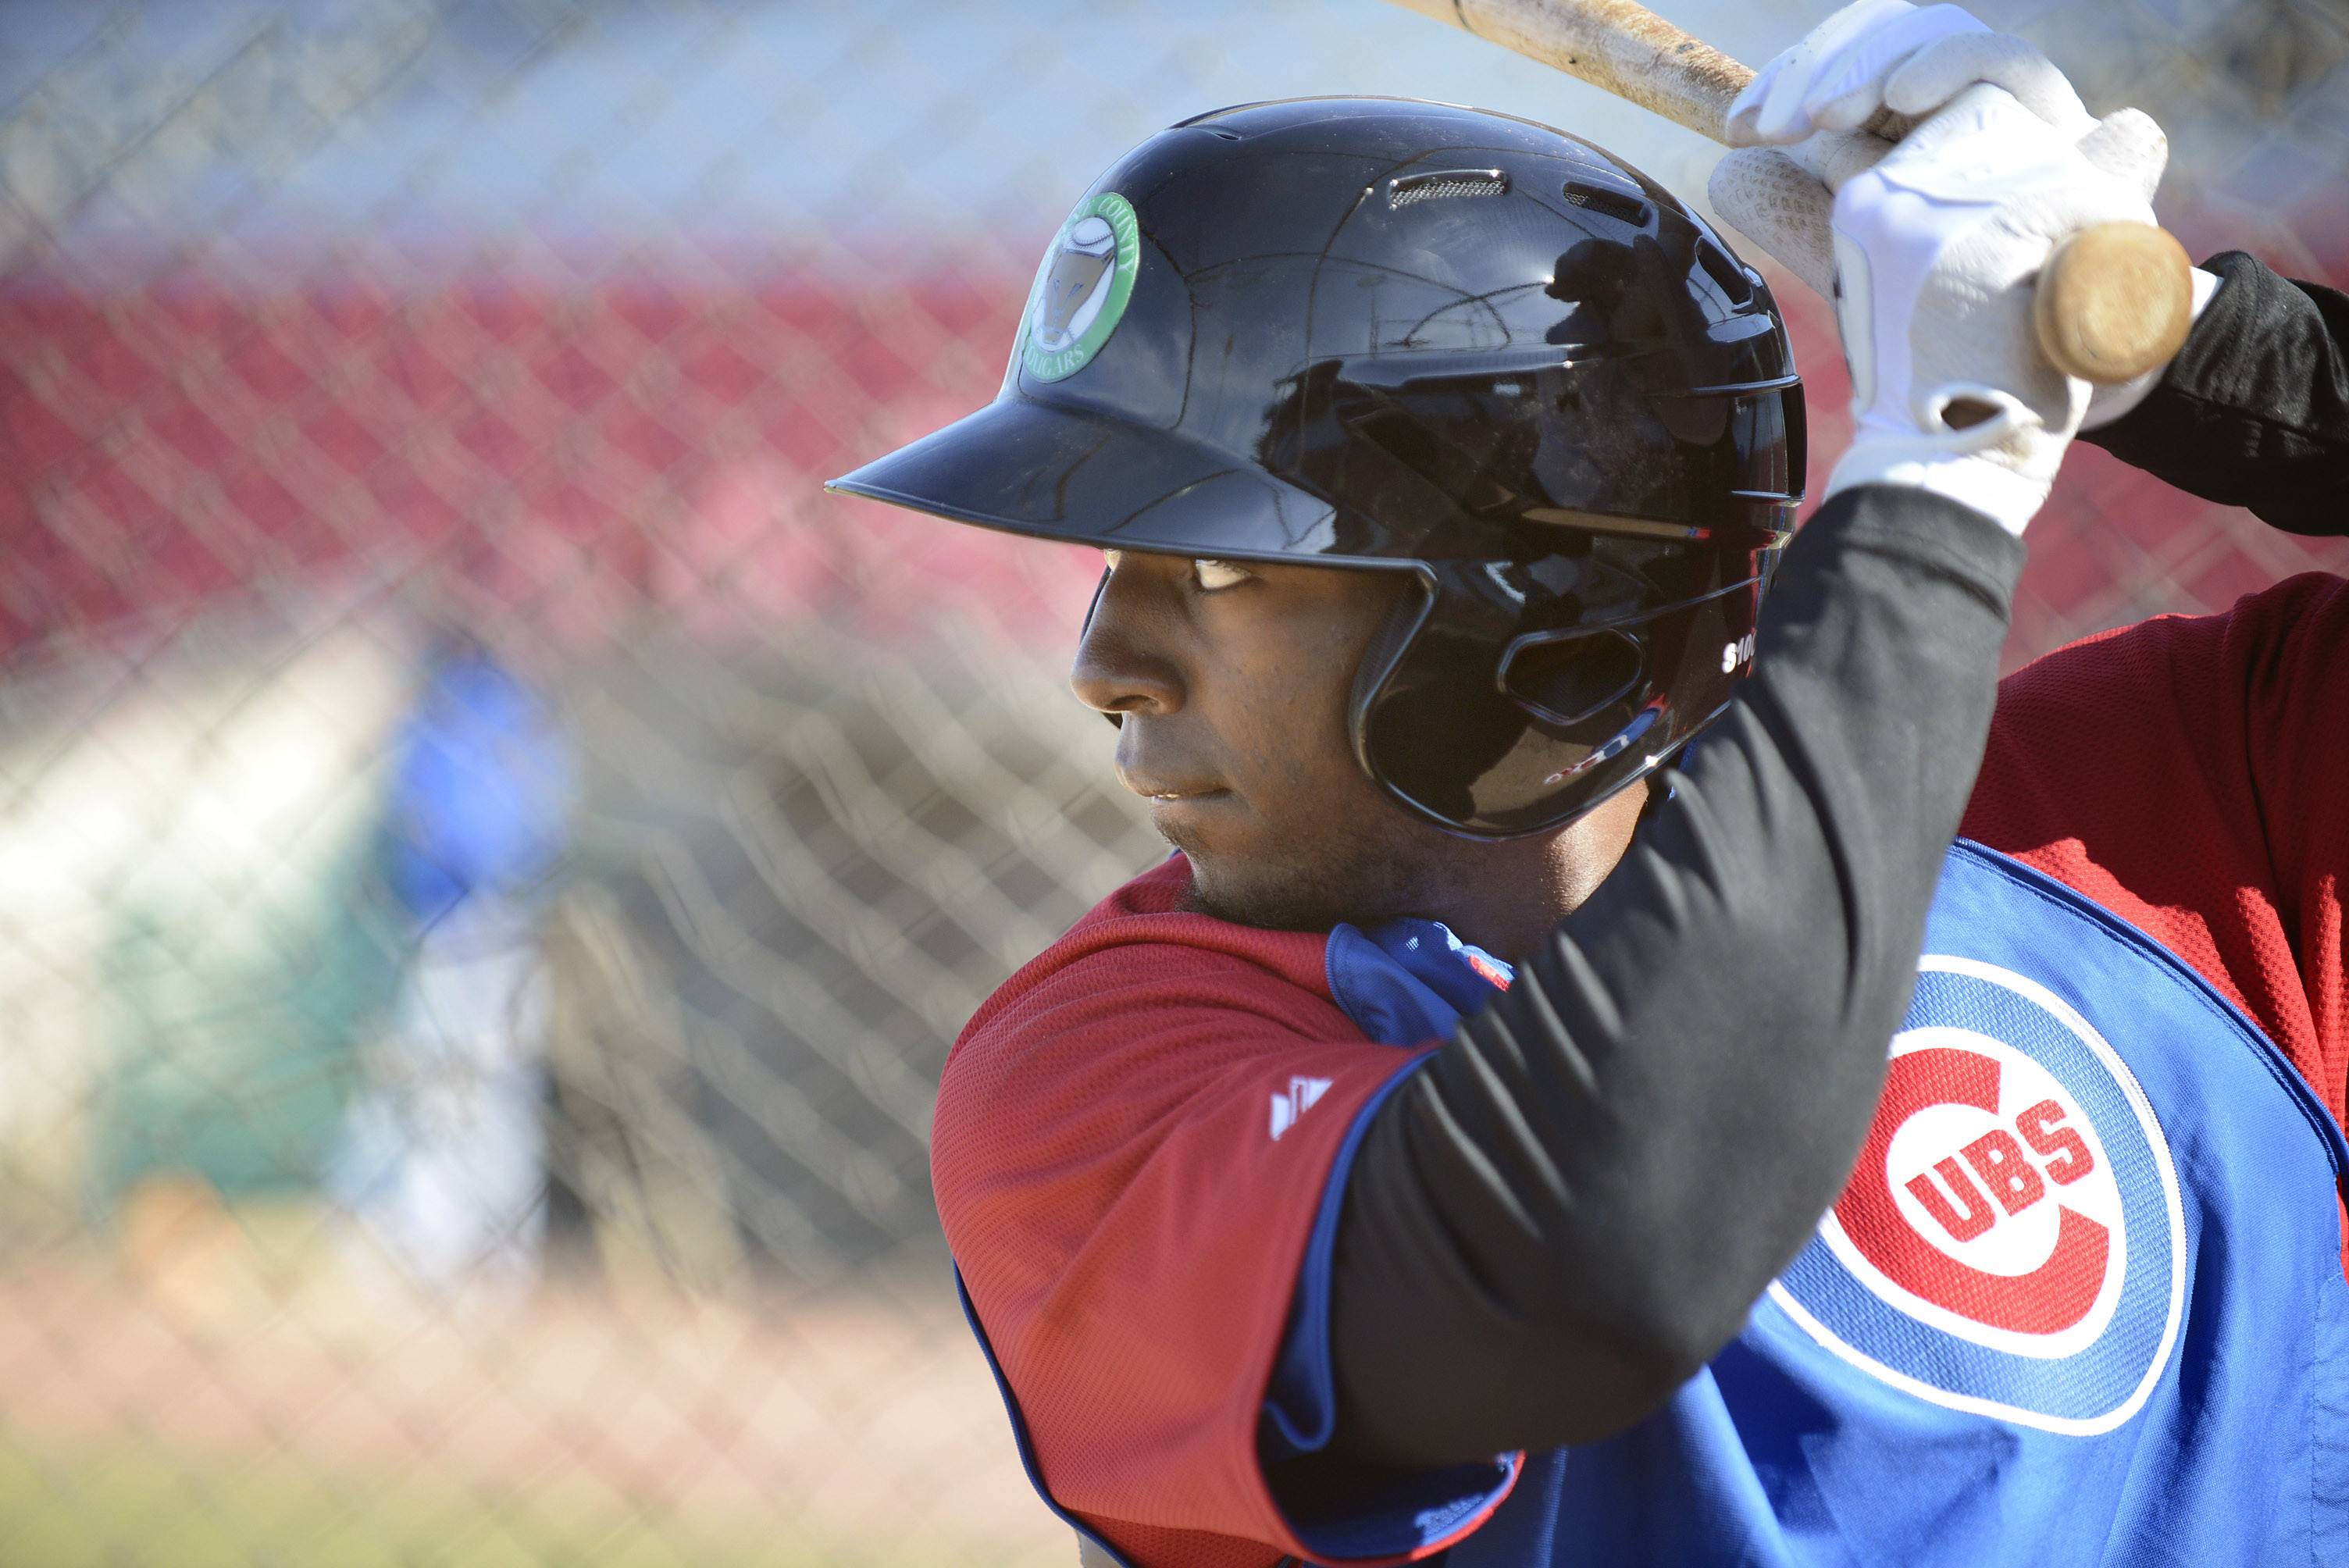 Kane County outfielder Shawon Dunston Jr., whose father played for the Cubs, has earned a spot on the Cougars roster.